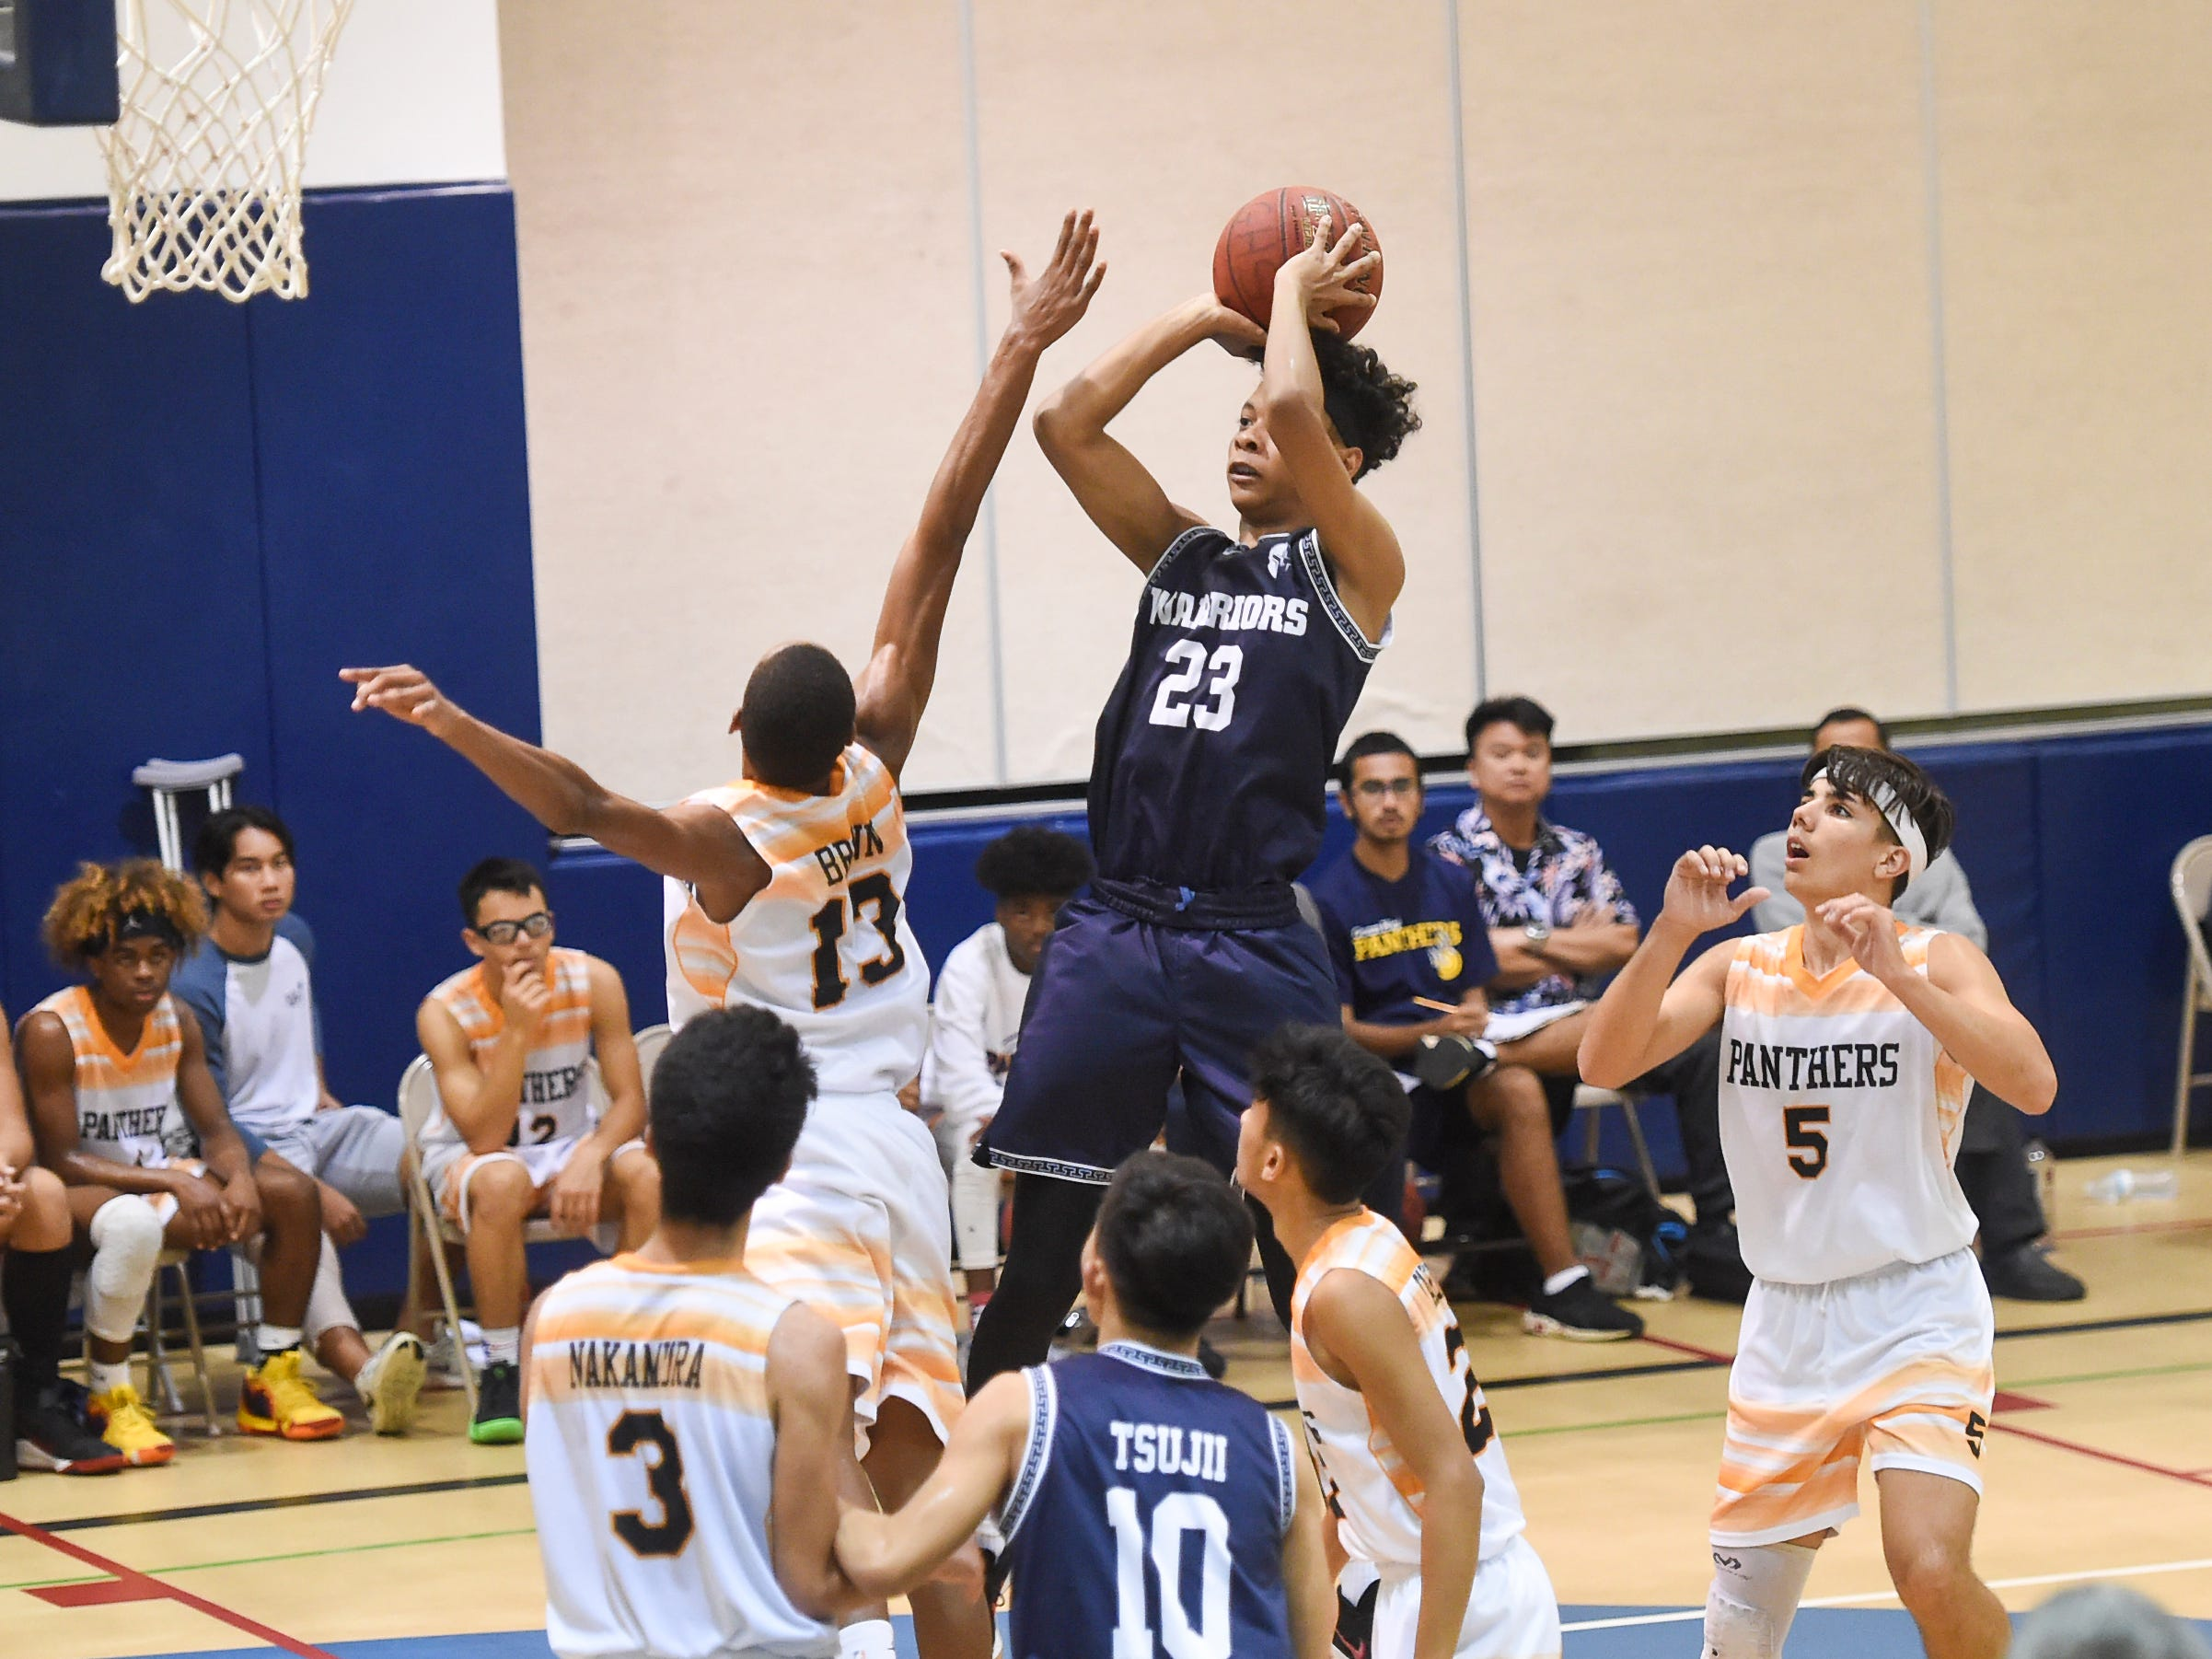 St. Paul's Reo Aiken (23) takes a jump shot against the Guam High Panthers during their IIAAG Boys' Basketball game at the Guam High School Gym, Feb. 5, 2019.